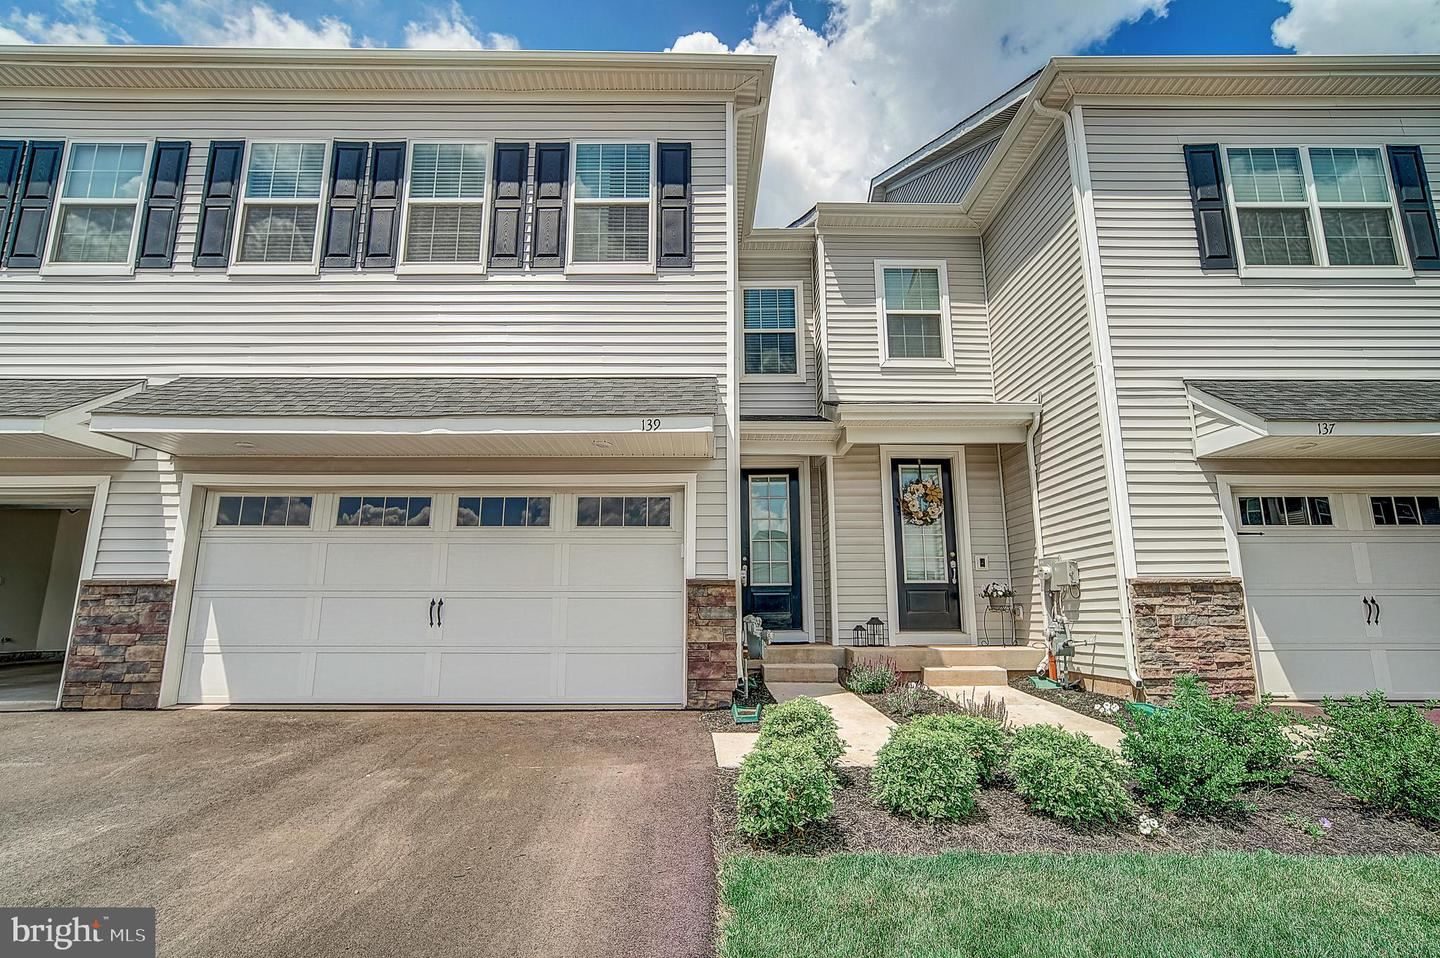 139 GOLDEN VALE DR, Royersford, PA 19468 - #: PAMC653514